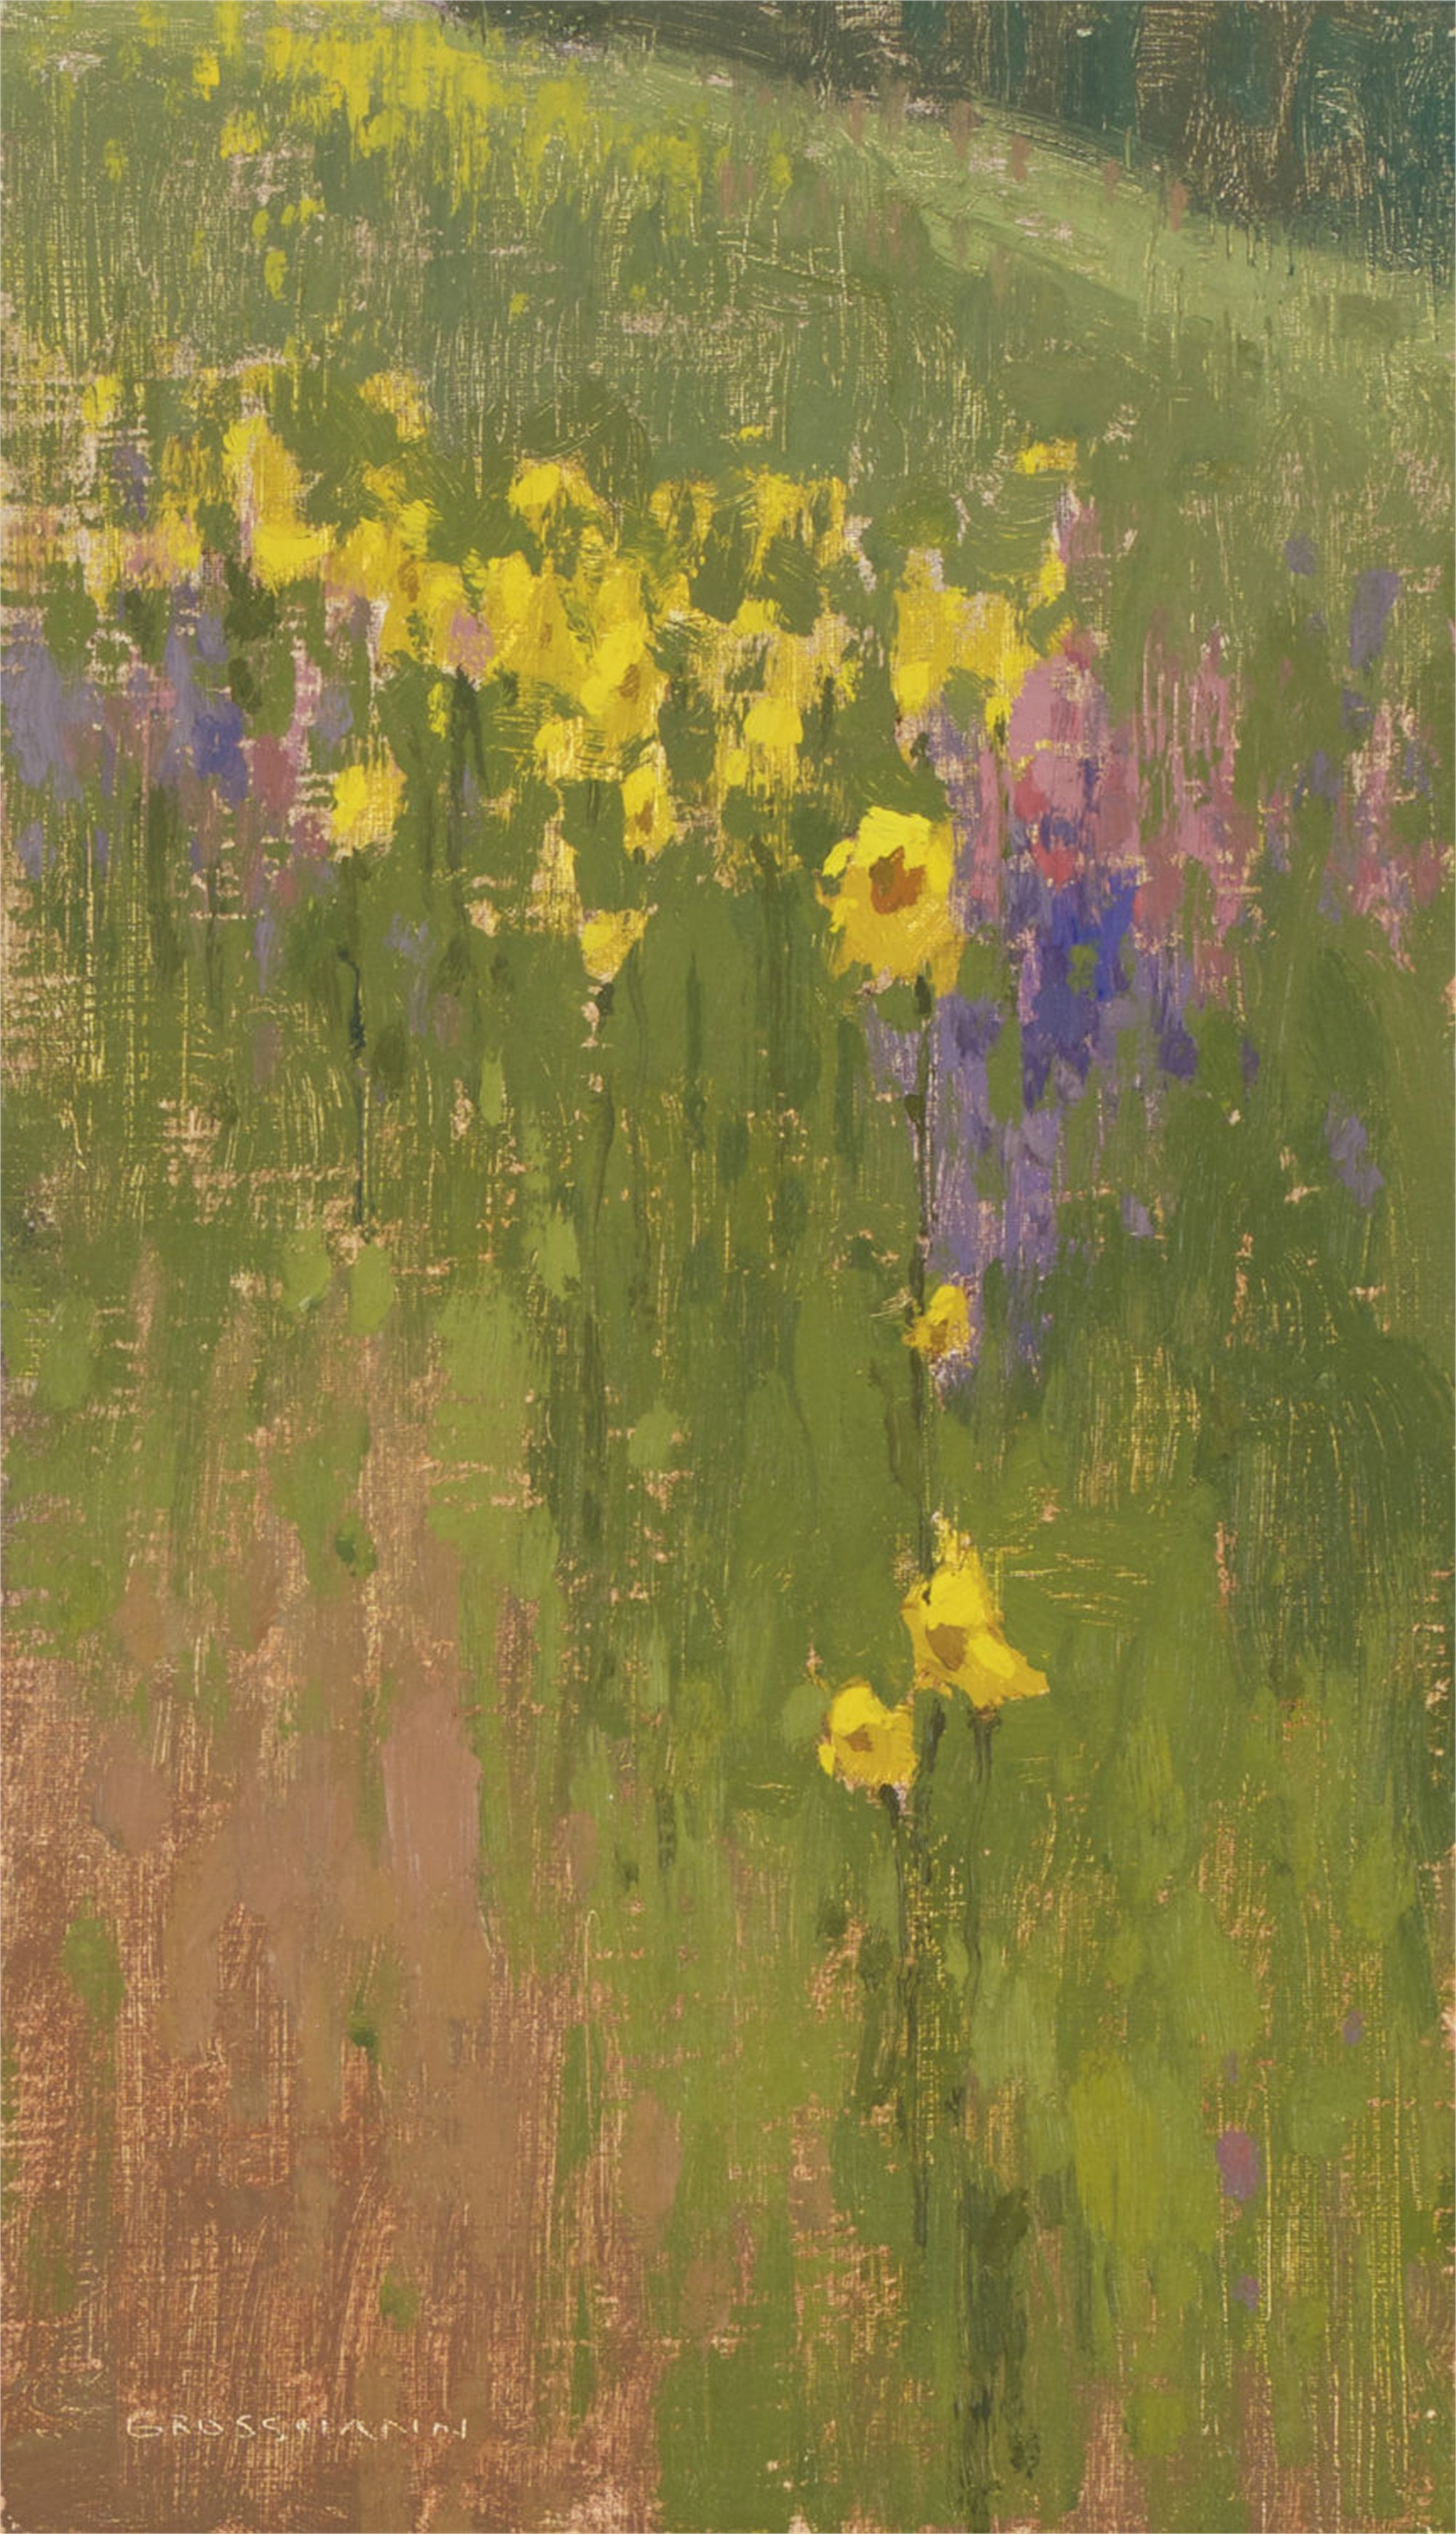 Wildflower Patterns I by David Grossmann